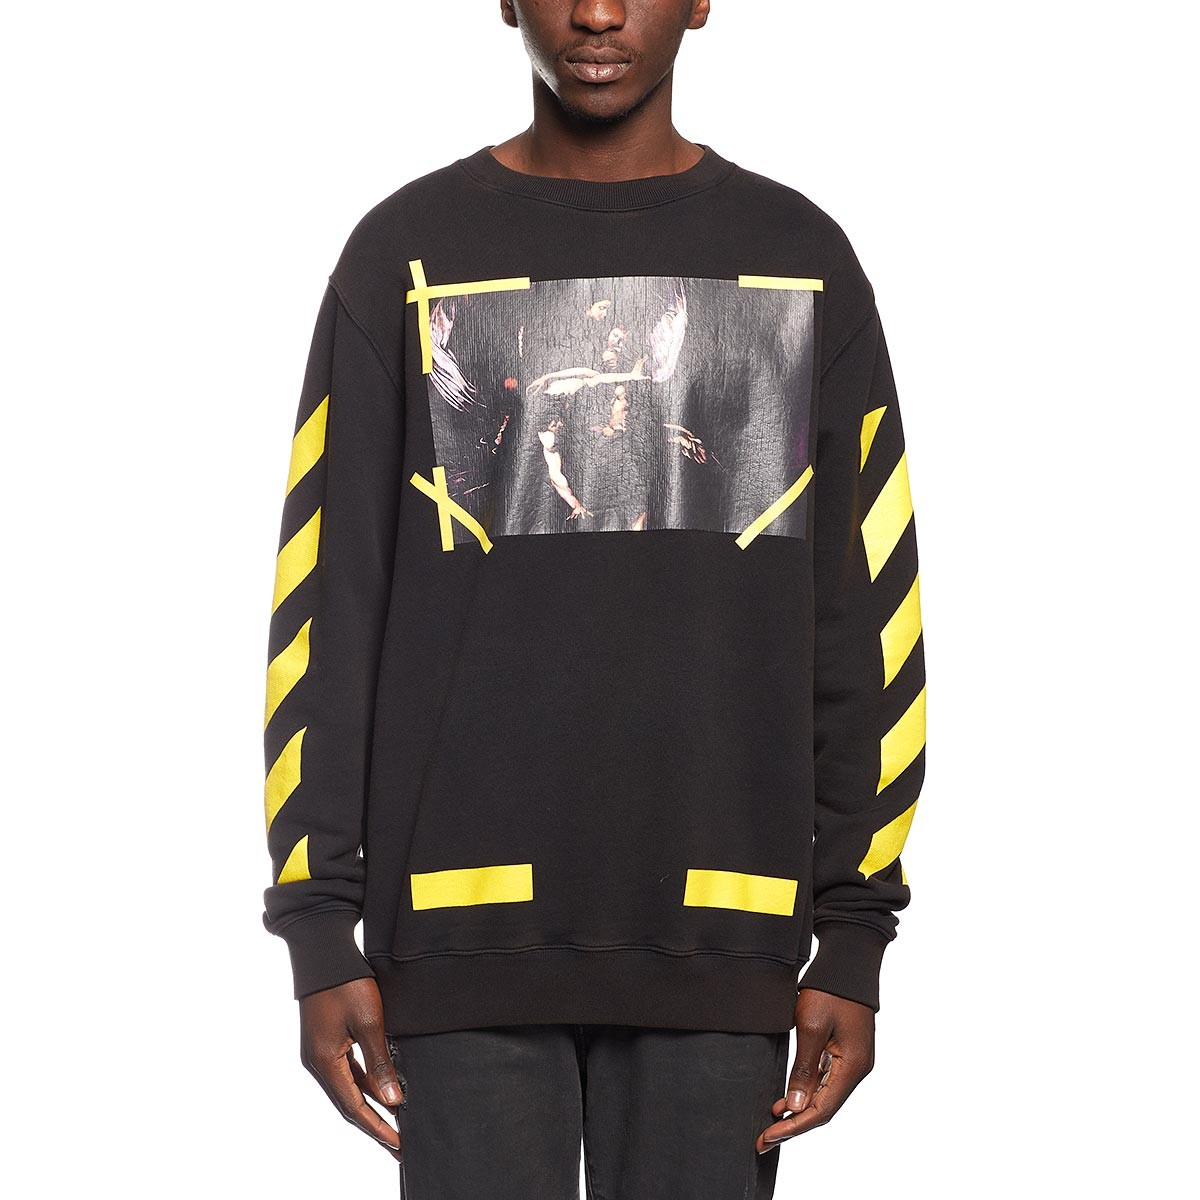 c8c272d6 Off-White ×. Off-White By Virgil Abloh 7 Opere Brushed Diagonals Caravaggio  Crewneck Sweatshirt In Black